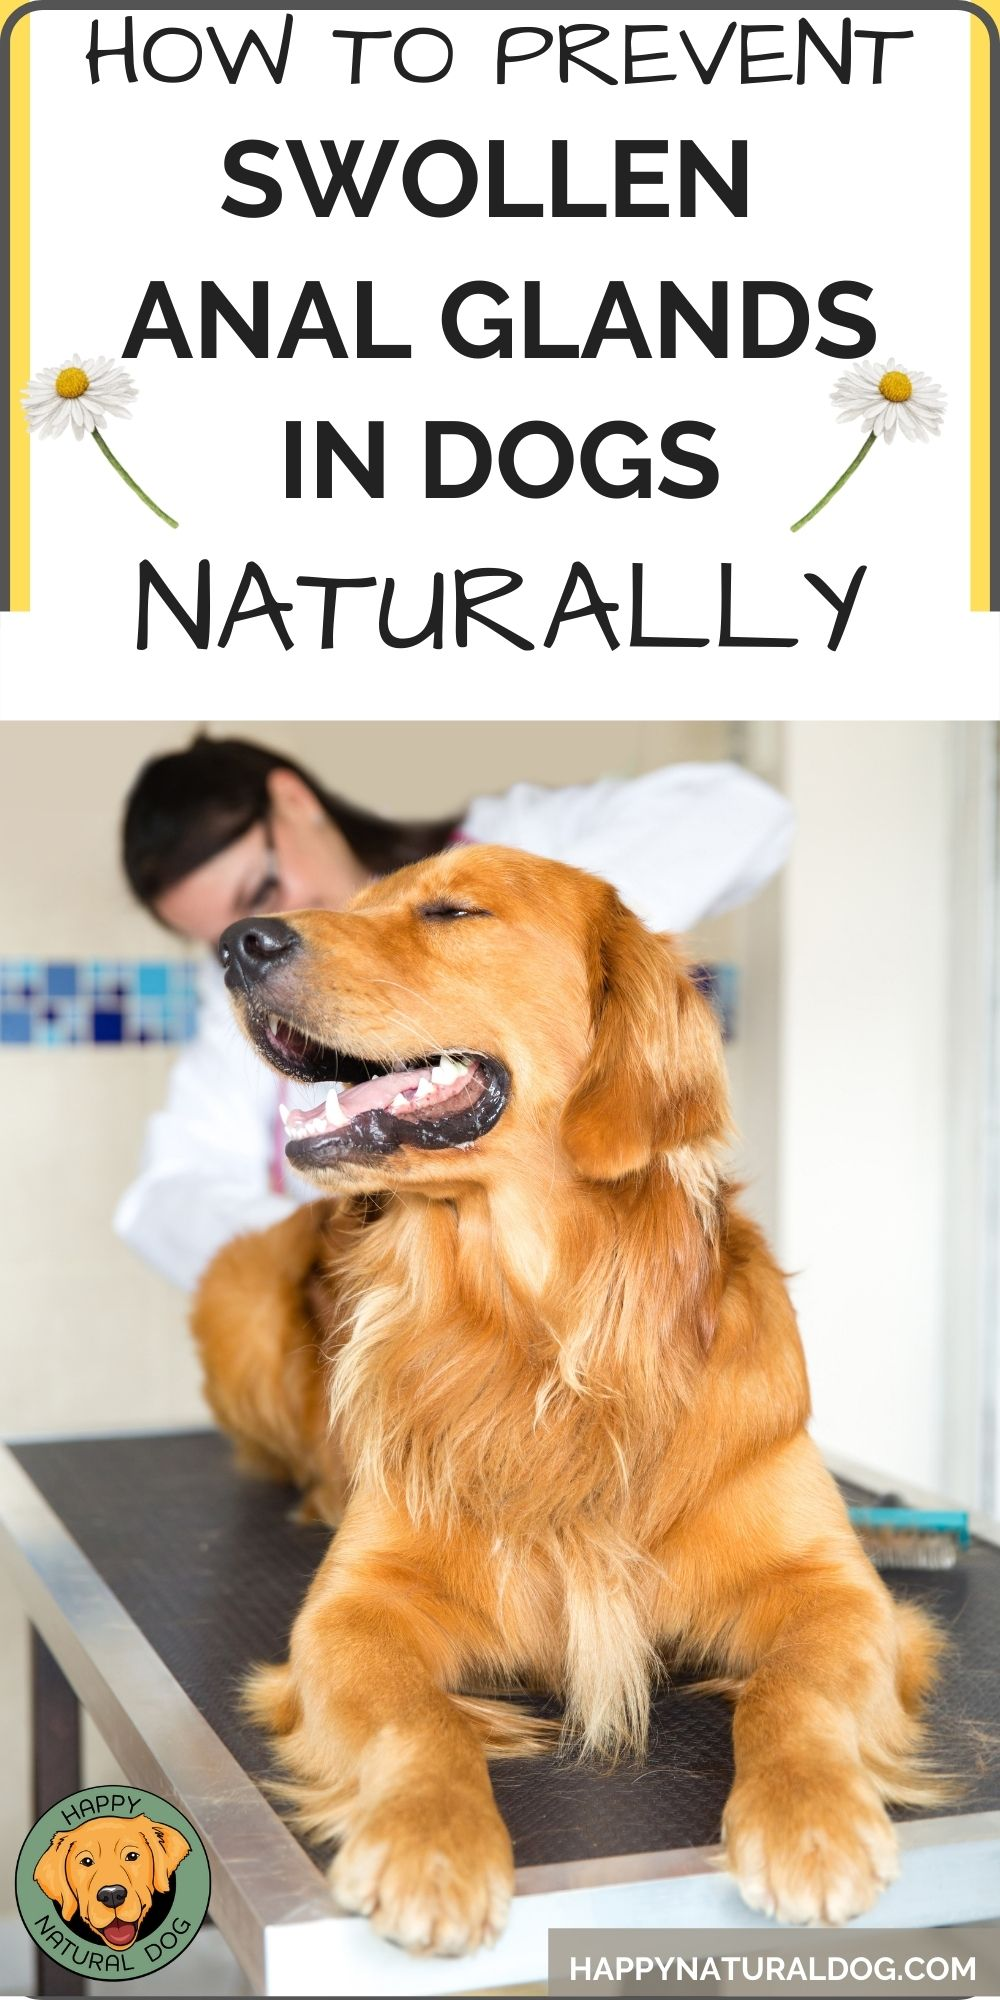 How to prevent swollen anal glands in dog PIN